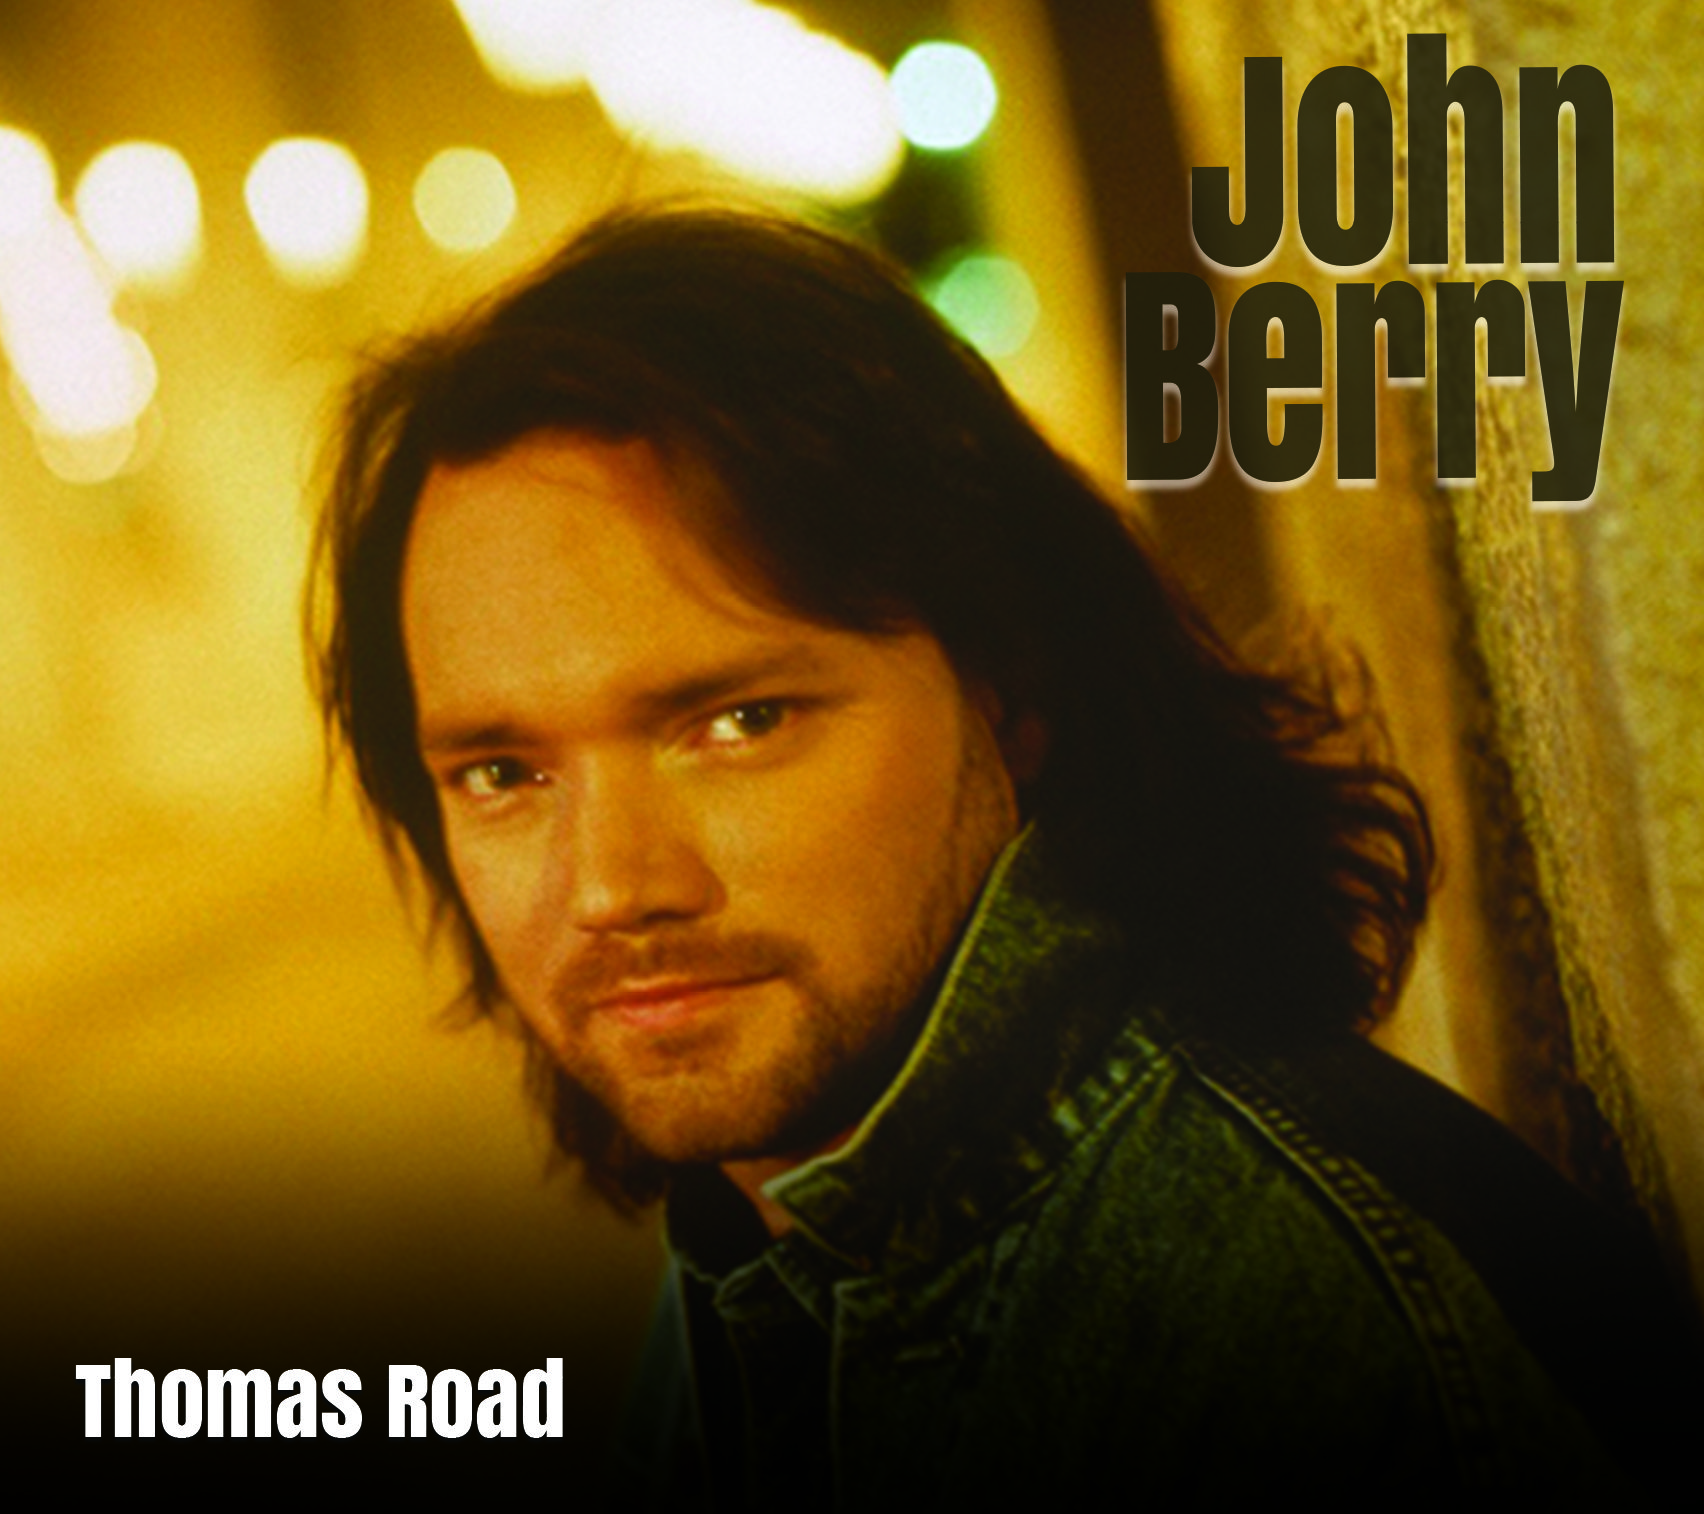 John Berry Returns With Nod To Home On New \'Thomas Road\' EP ...